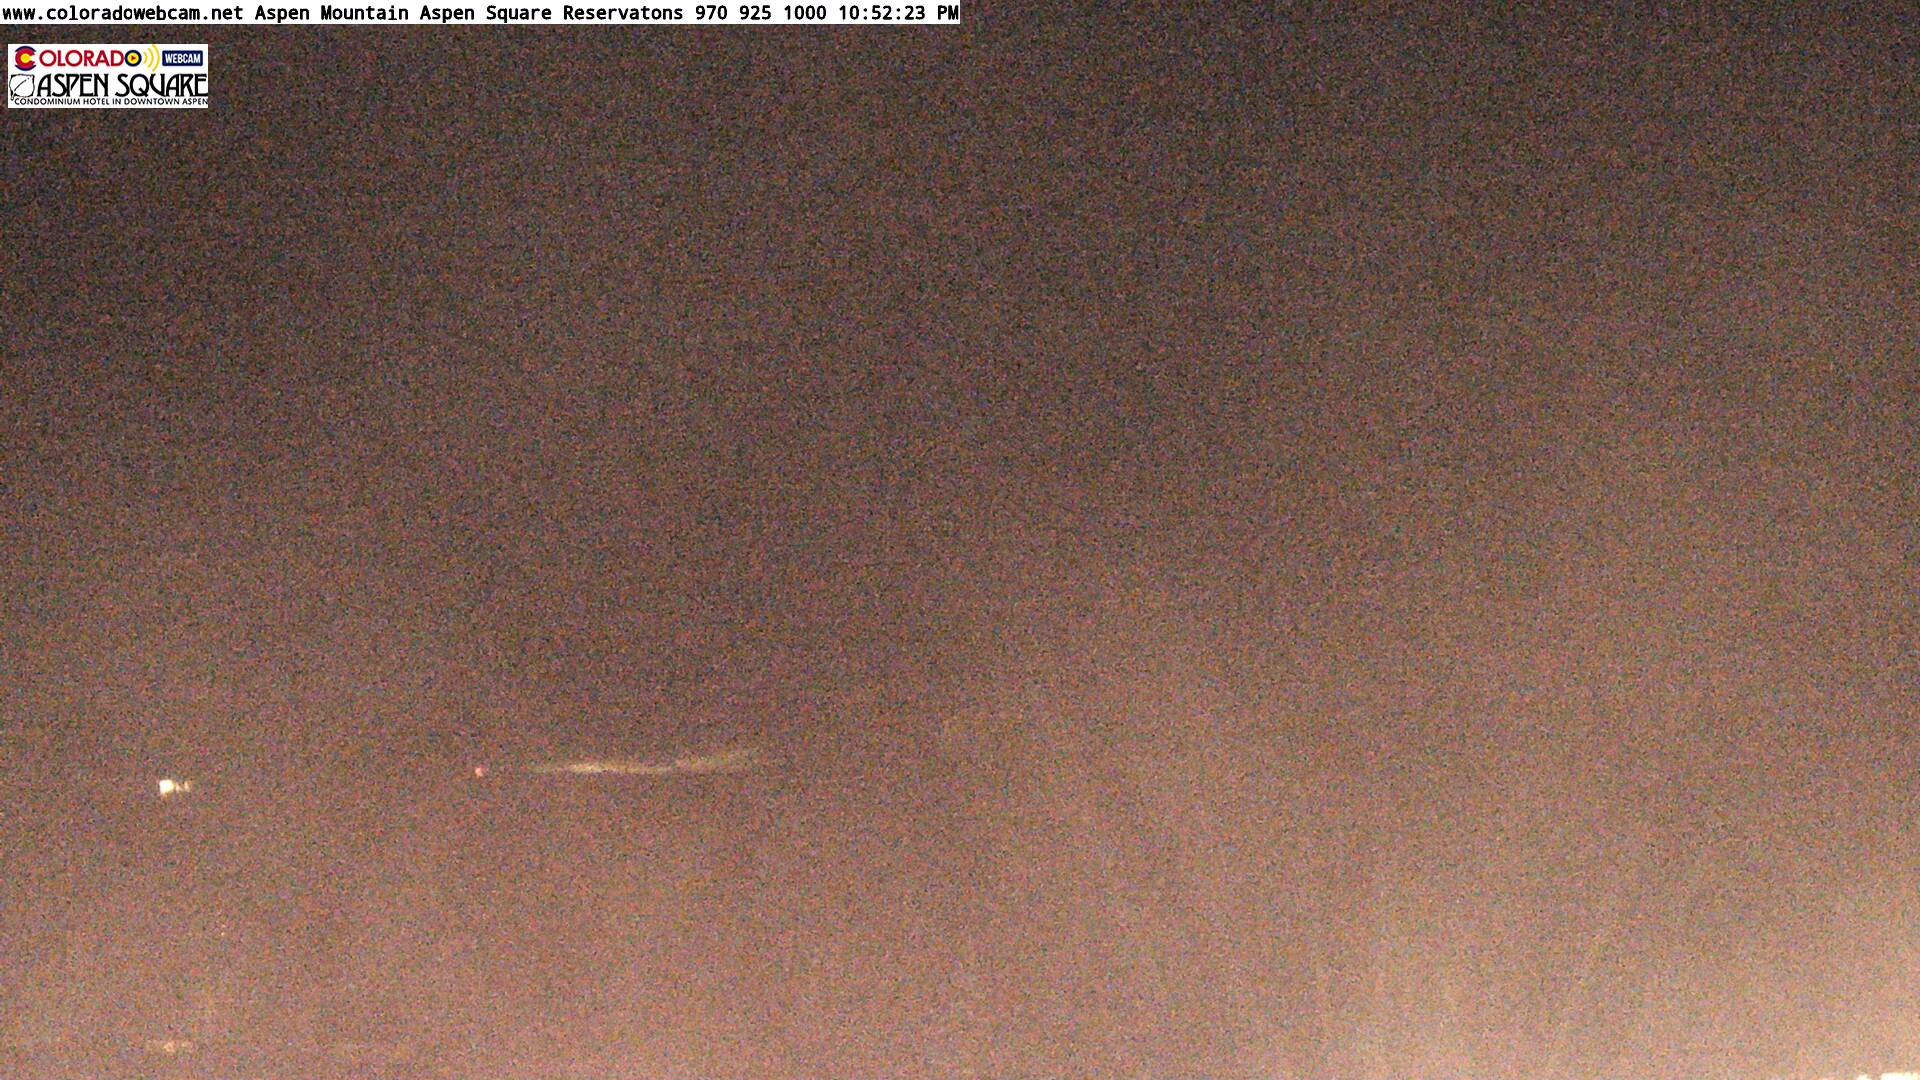 Aspen from Colorado Web Cam.net